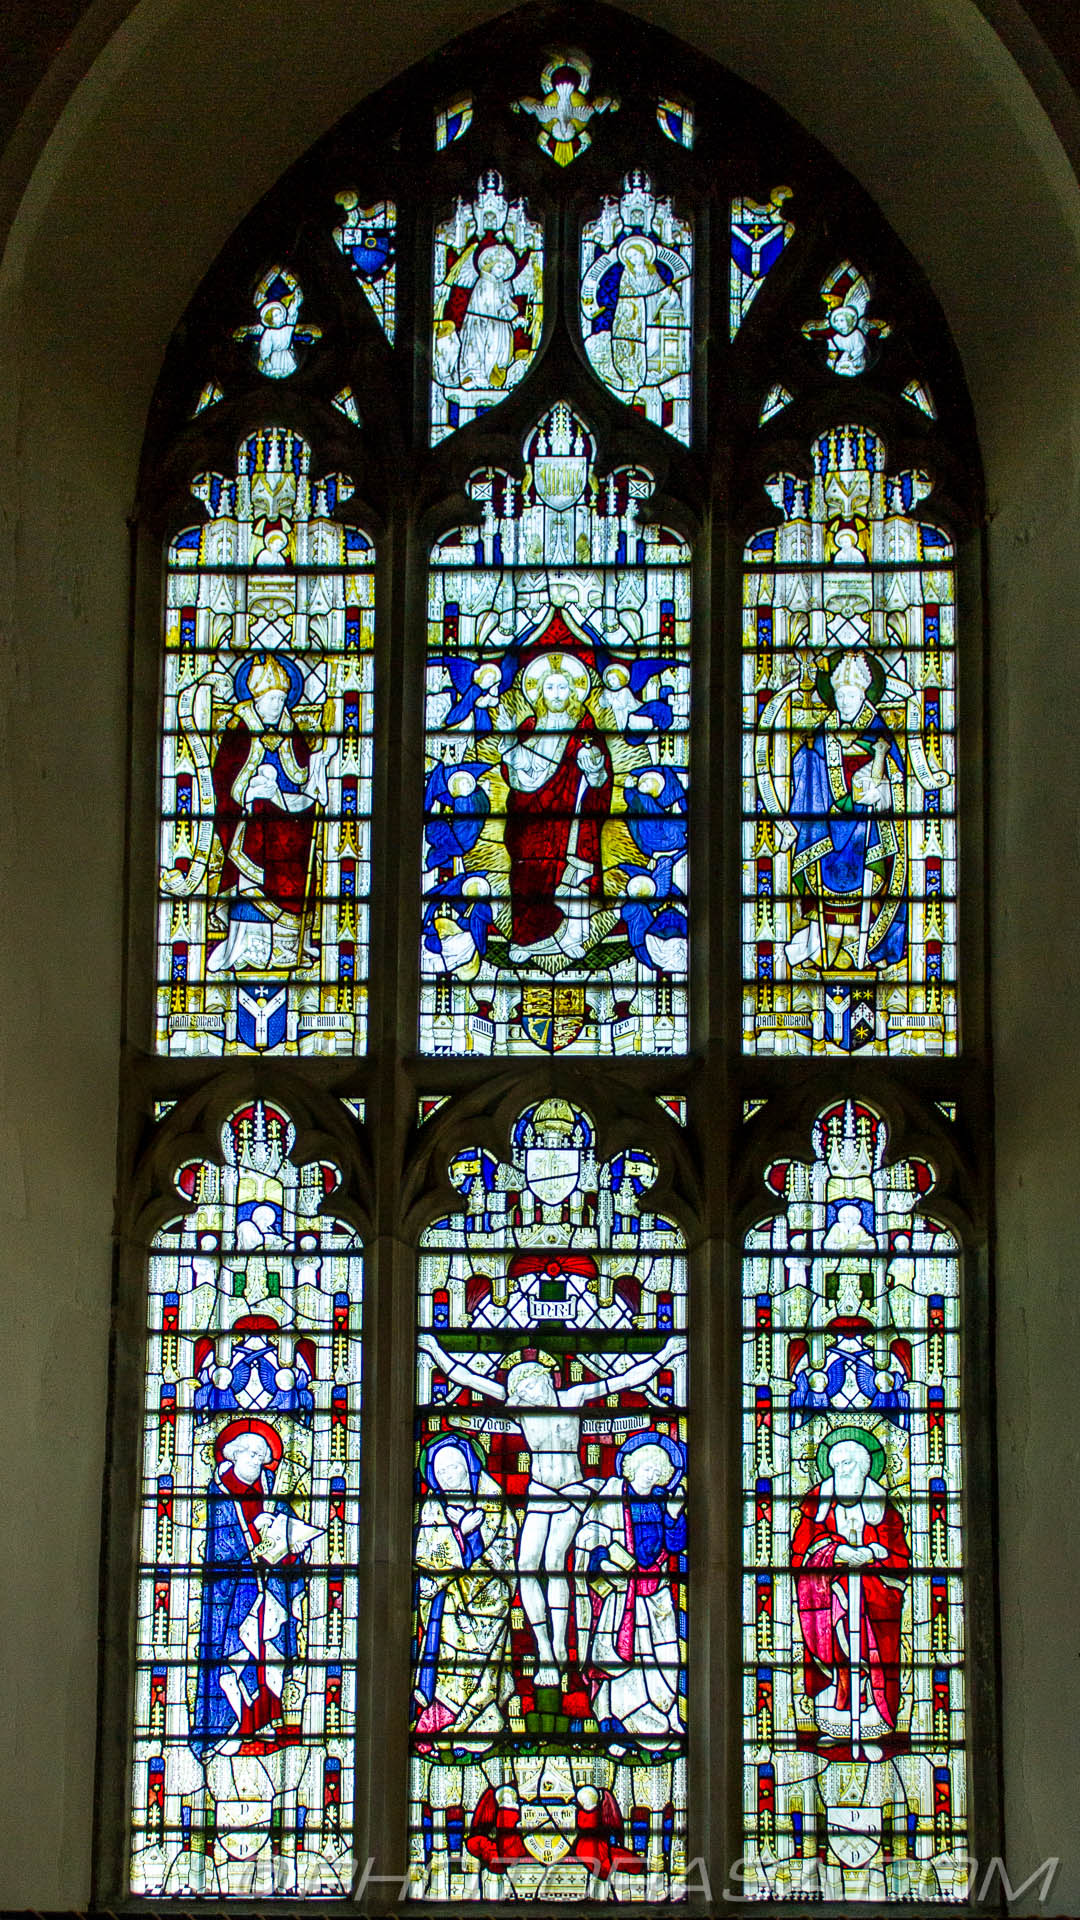 http://photorasa.com/parish-church-st-peter-st-paul-headcorn/large-chancel-stained-glass-window-showing-jesus-on-the-cross-an/